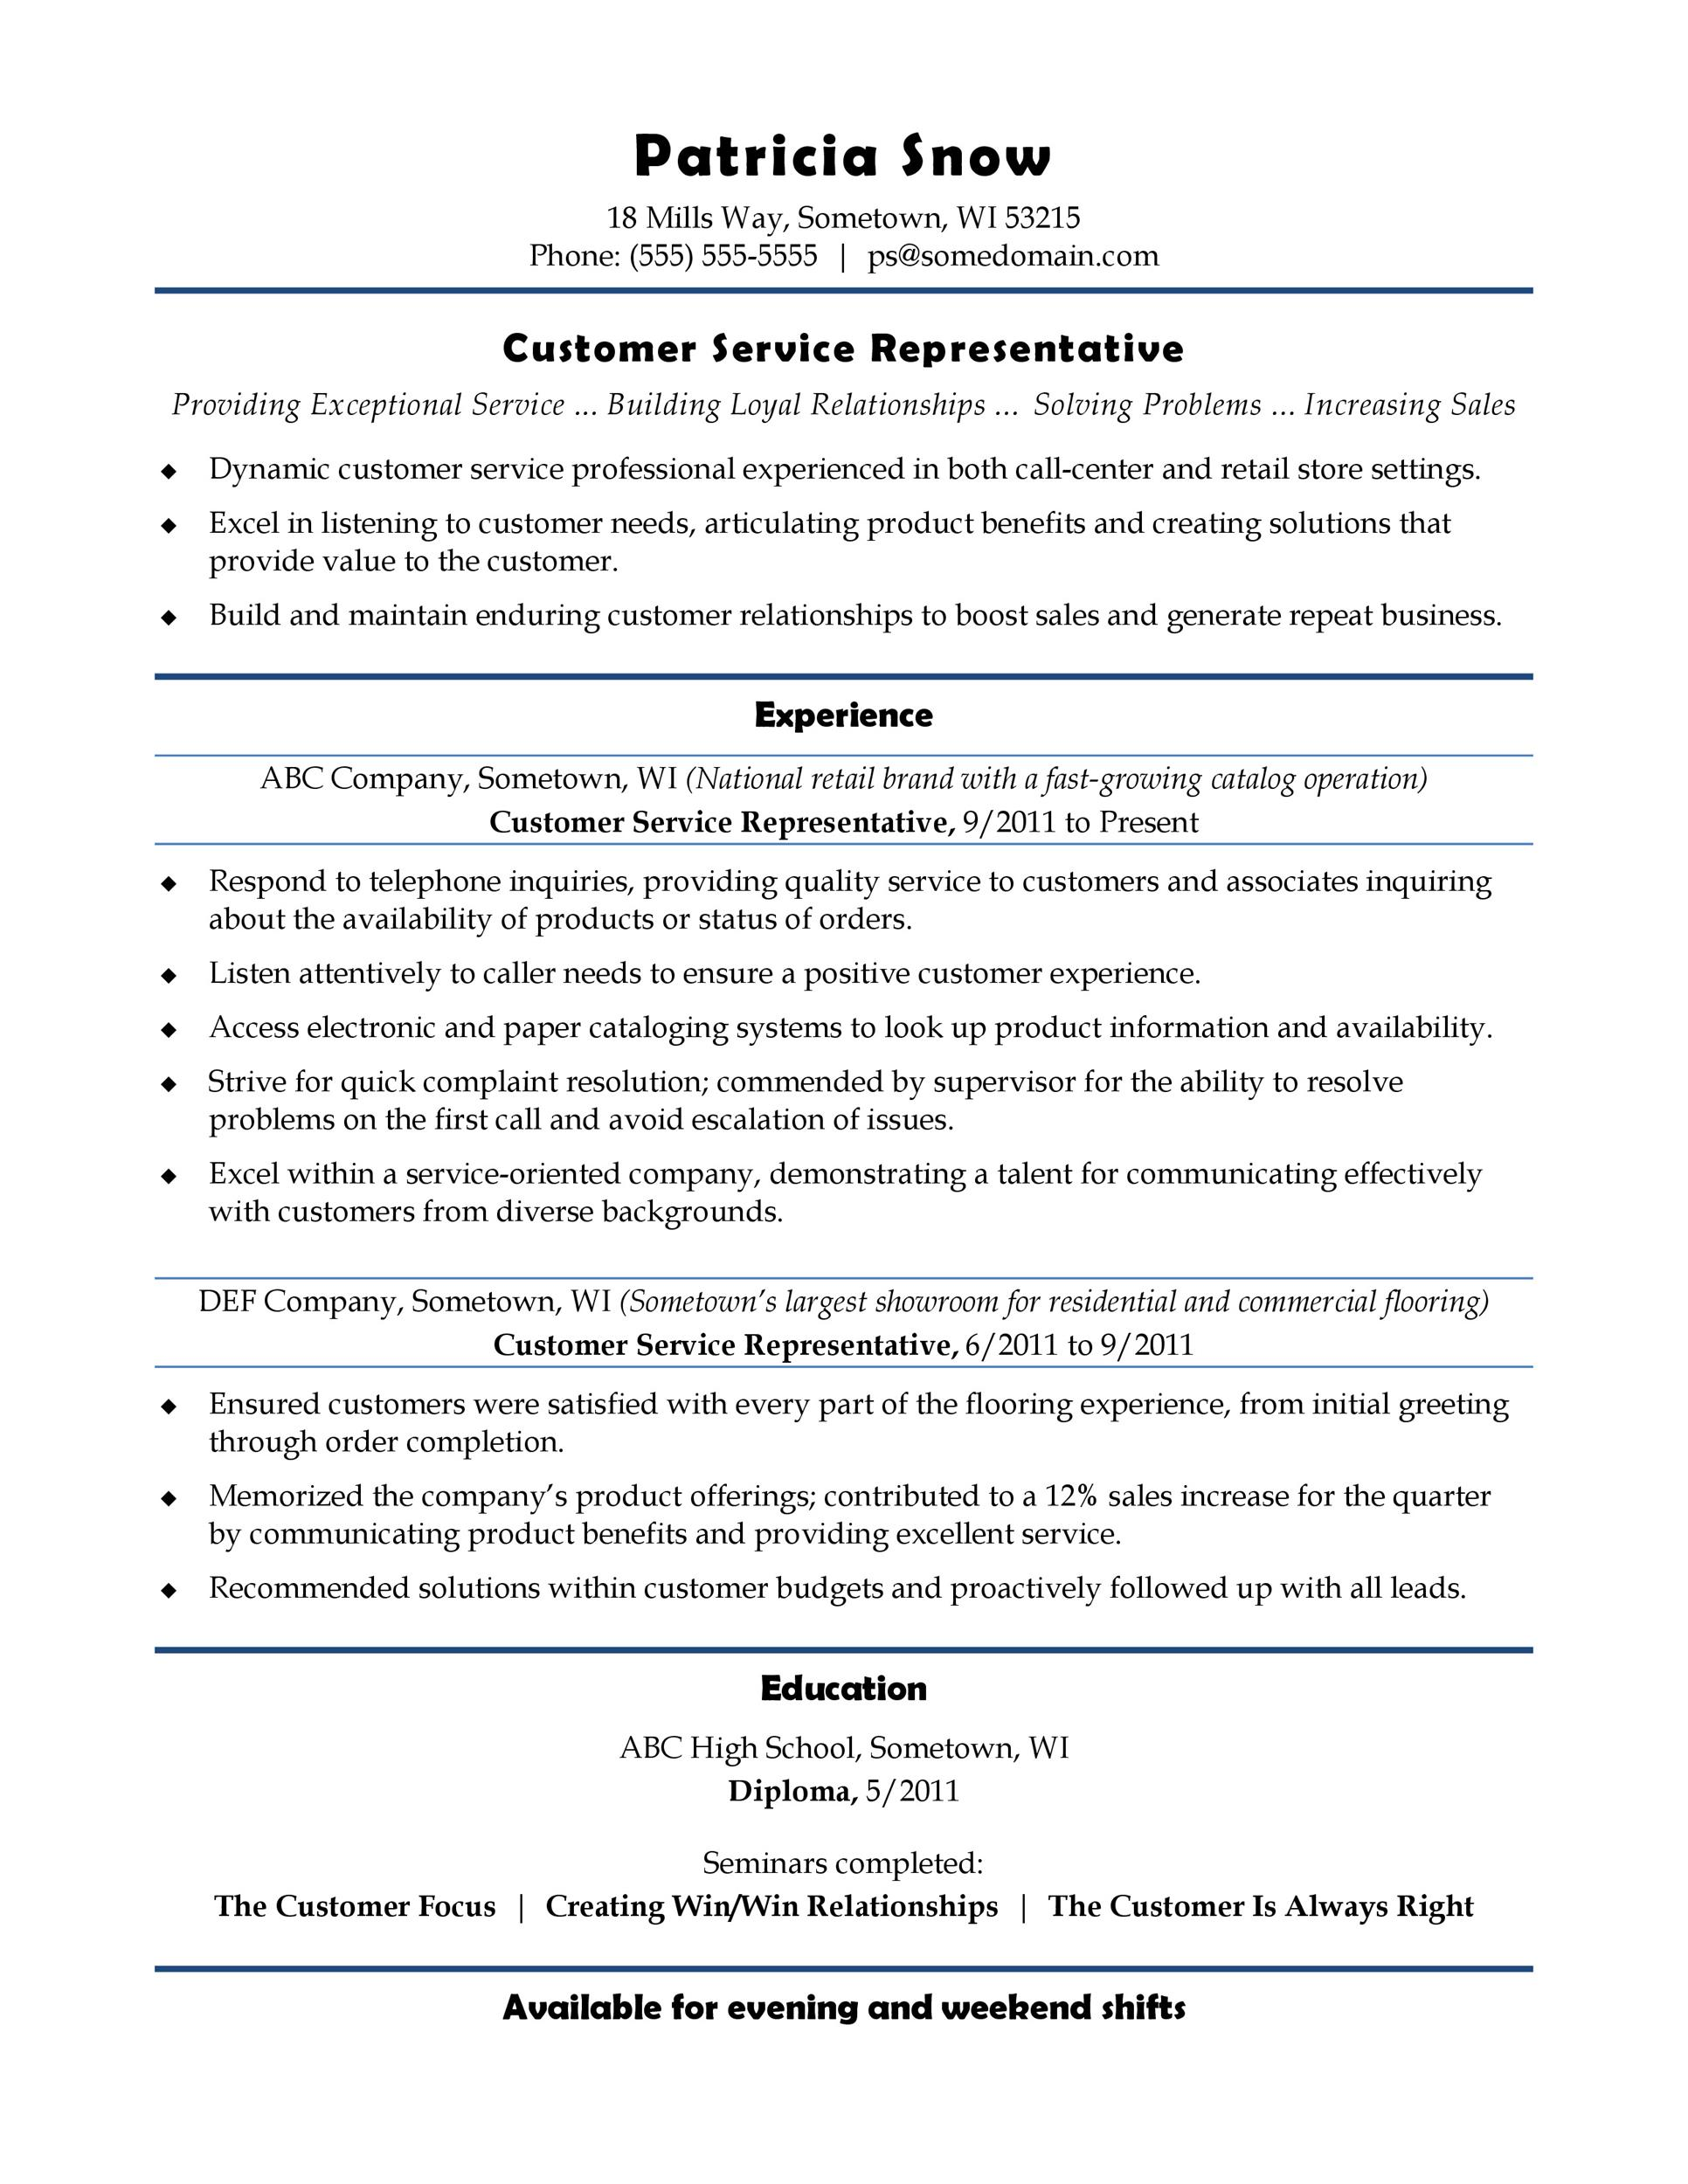 30+ Customer Service Resume Examples - Template Lab - customer service retail sample resume